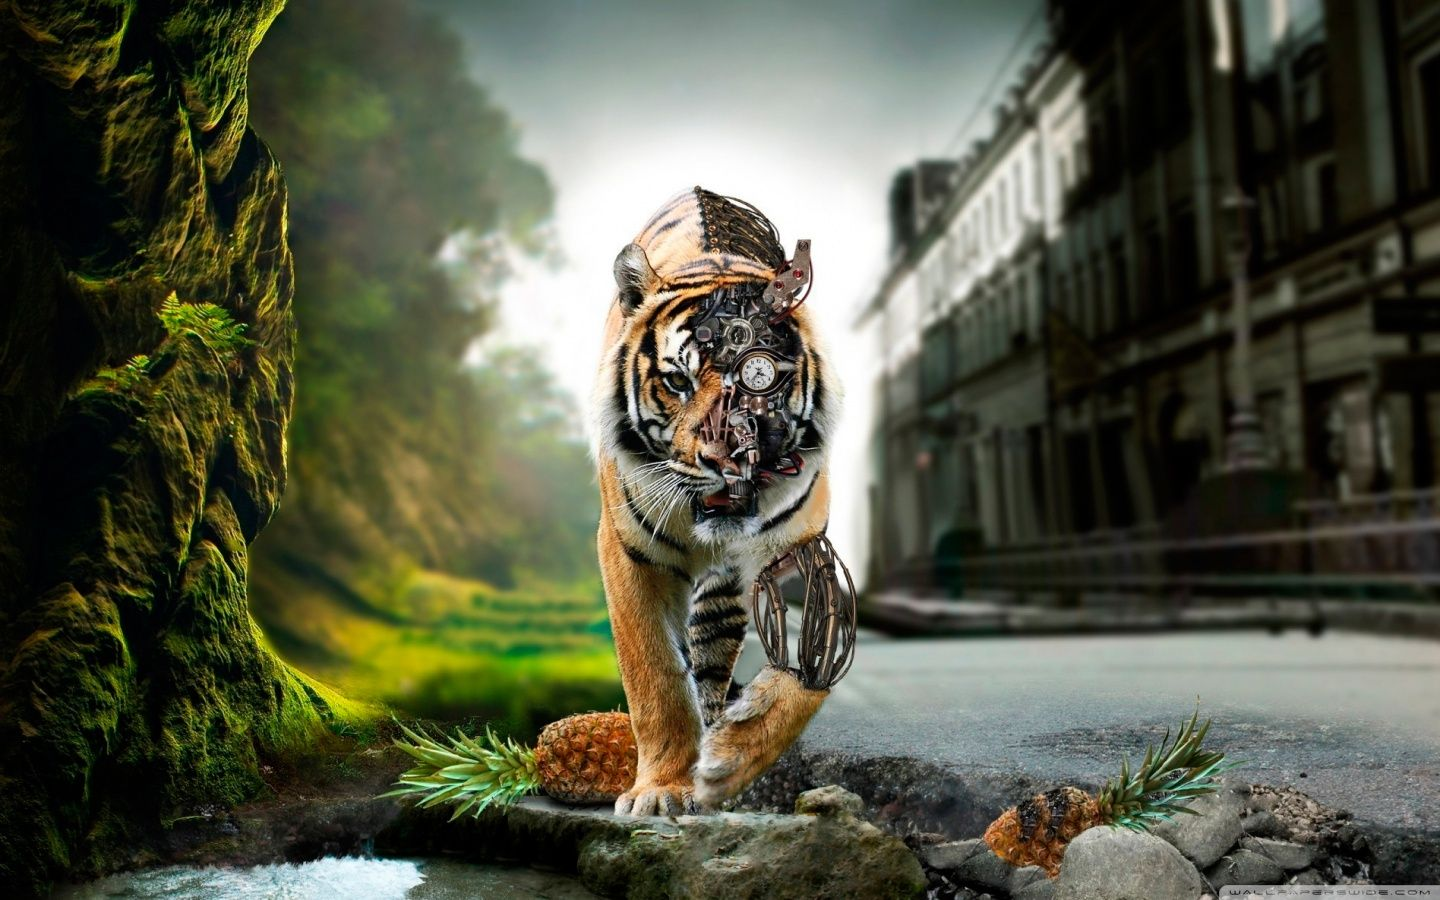 Amazing Wallpapers 1920 1080 Wallpapers Amazing Picture 43 Wallpapers Adorable Wallpapers Tiger Wallpaper Lion Wallpaper Robot Wallpaper